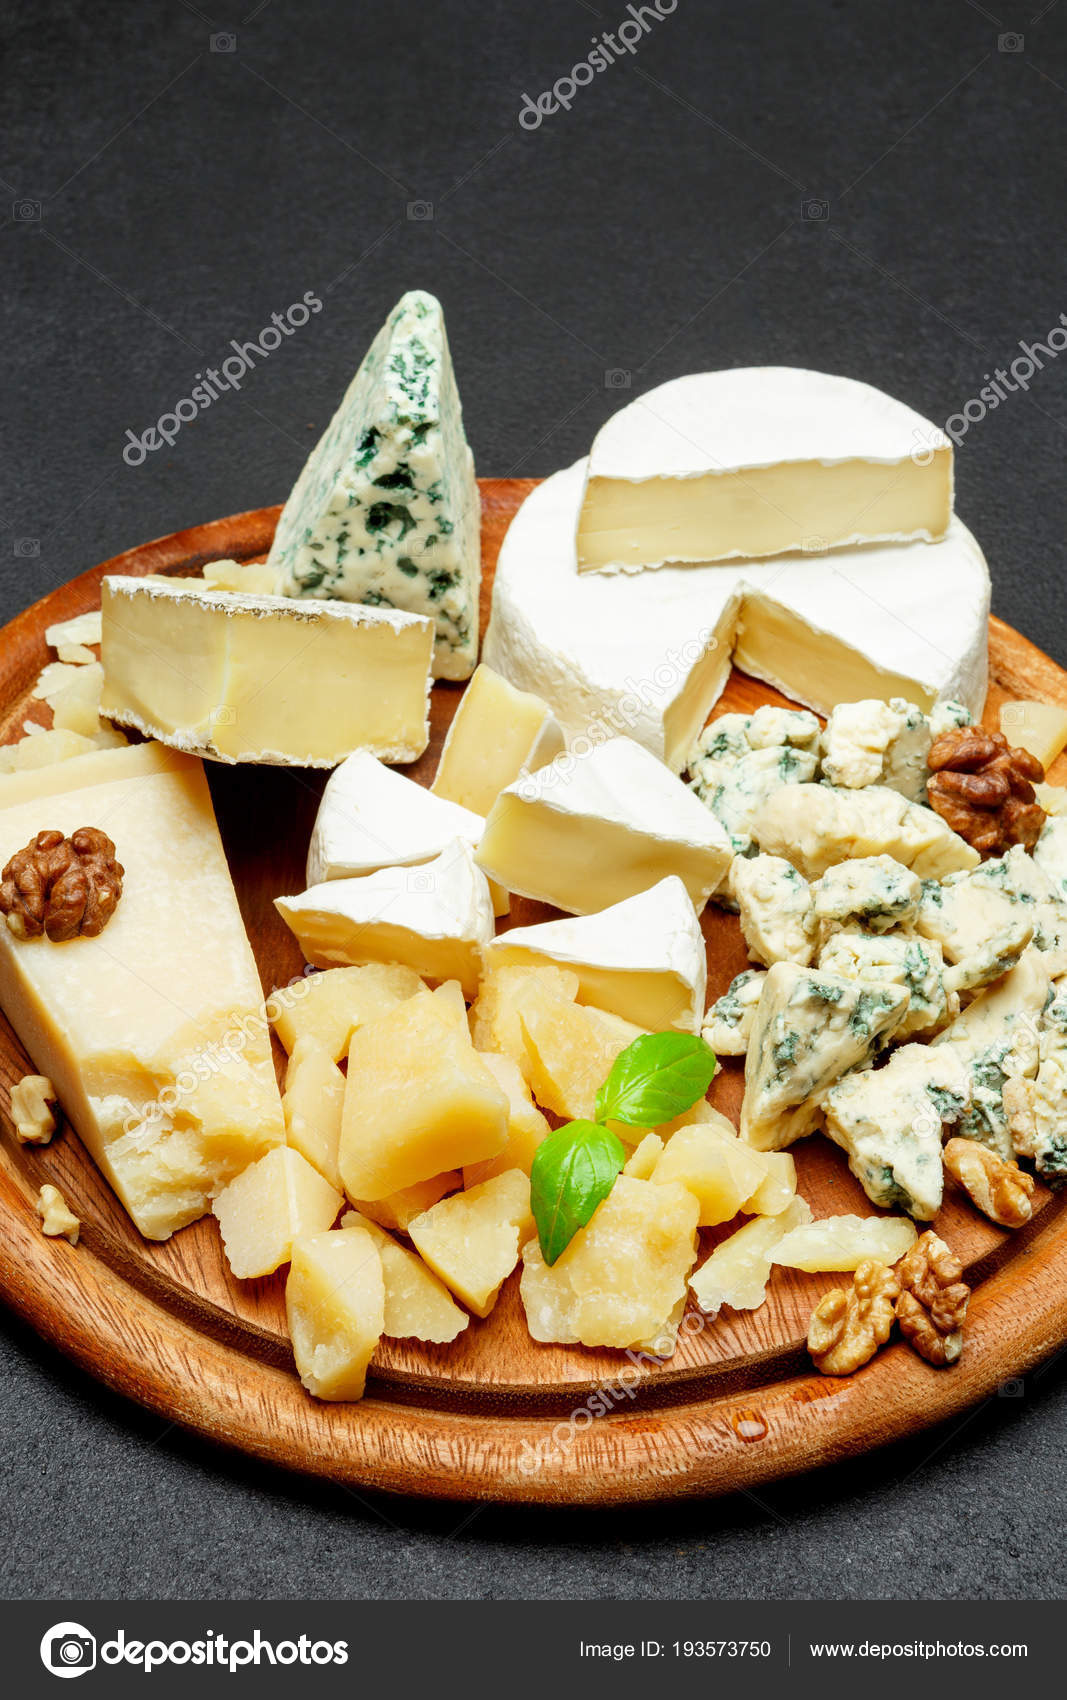 Cheese plate with Assorted cheeses Camembert Brie Parmesan blue cheese goat \u2014 Stock & Cheese plate with Assorted cheeses Camembert Brie Parmesan blue ...